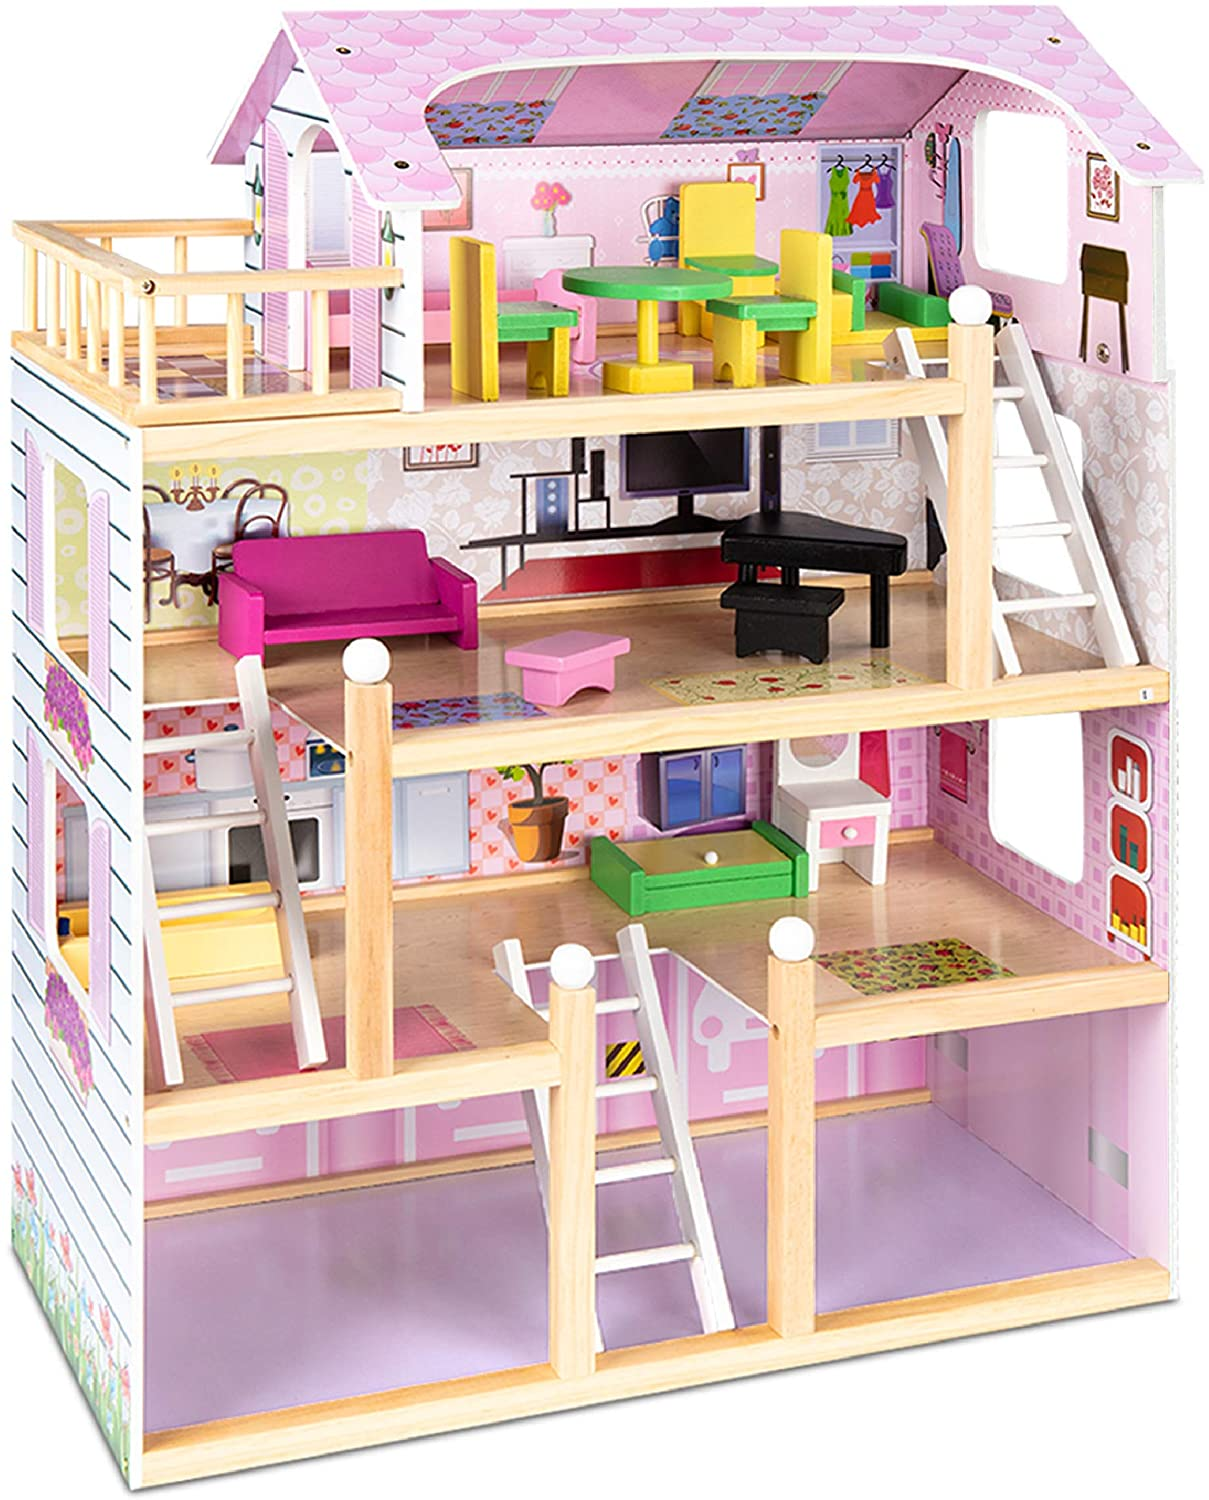 Best Choice Products 4-Level Wooden Dollhouse, 13-Piece